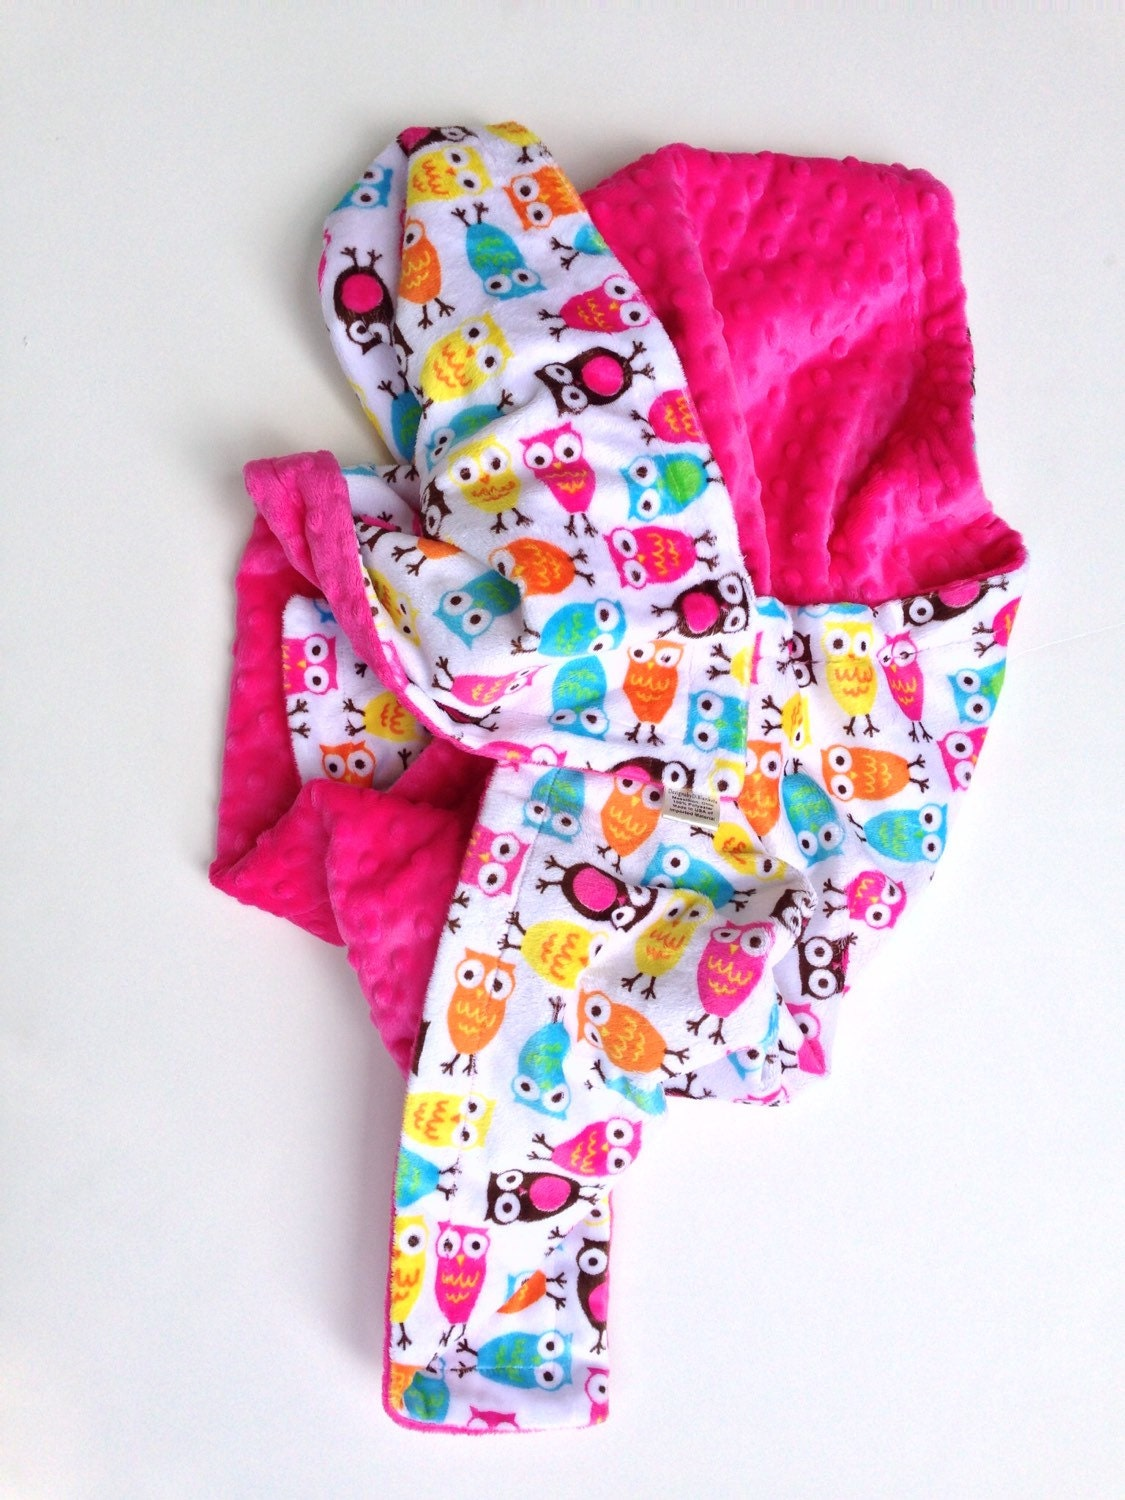 Find great deals on eBay forFind great deals on eBay forOwl Blanketin BabyFind great deals on eBay forFind great deals on eBay forOwl Blanketin BabyBlankets. Shop with confidence.